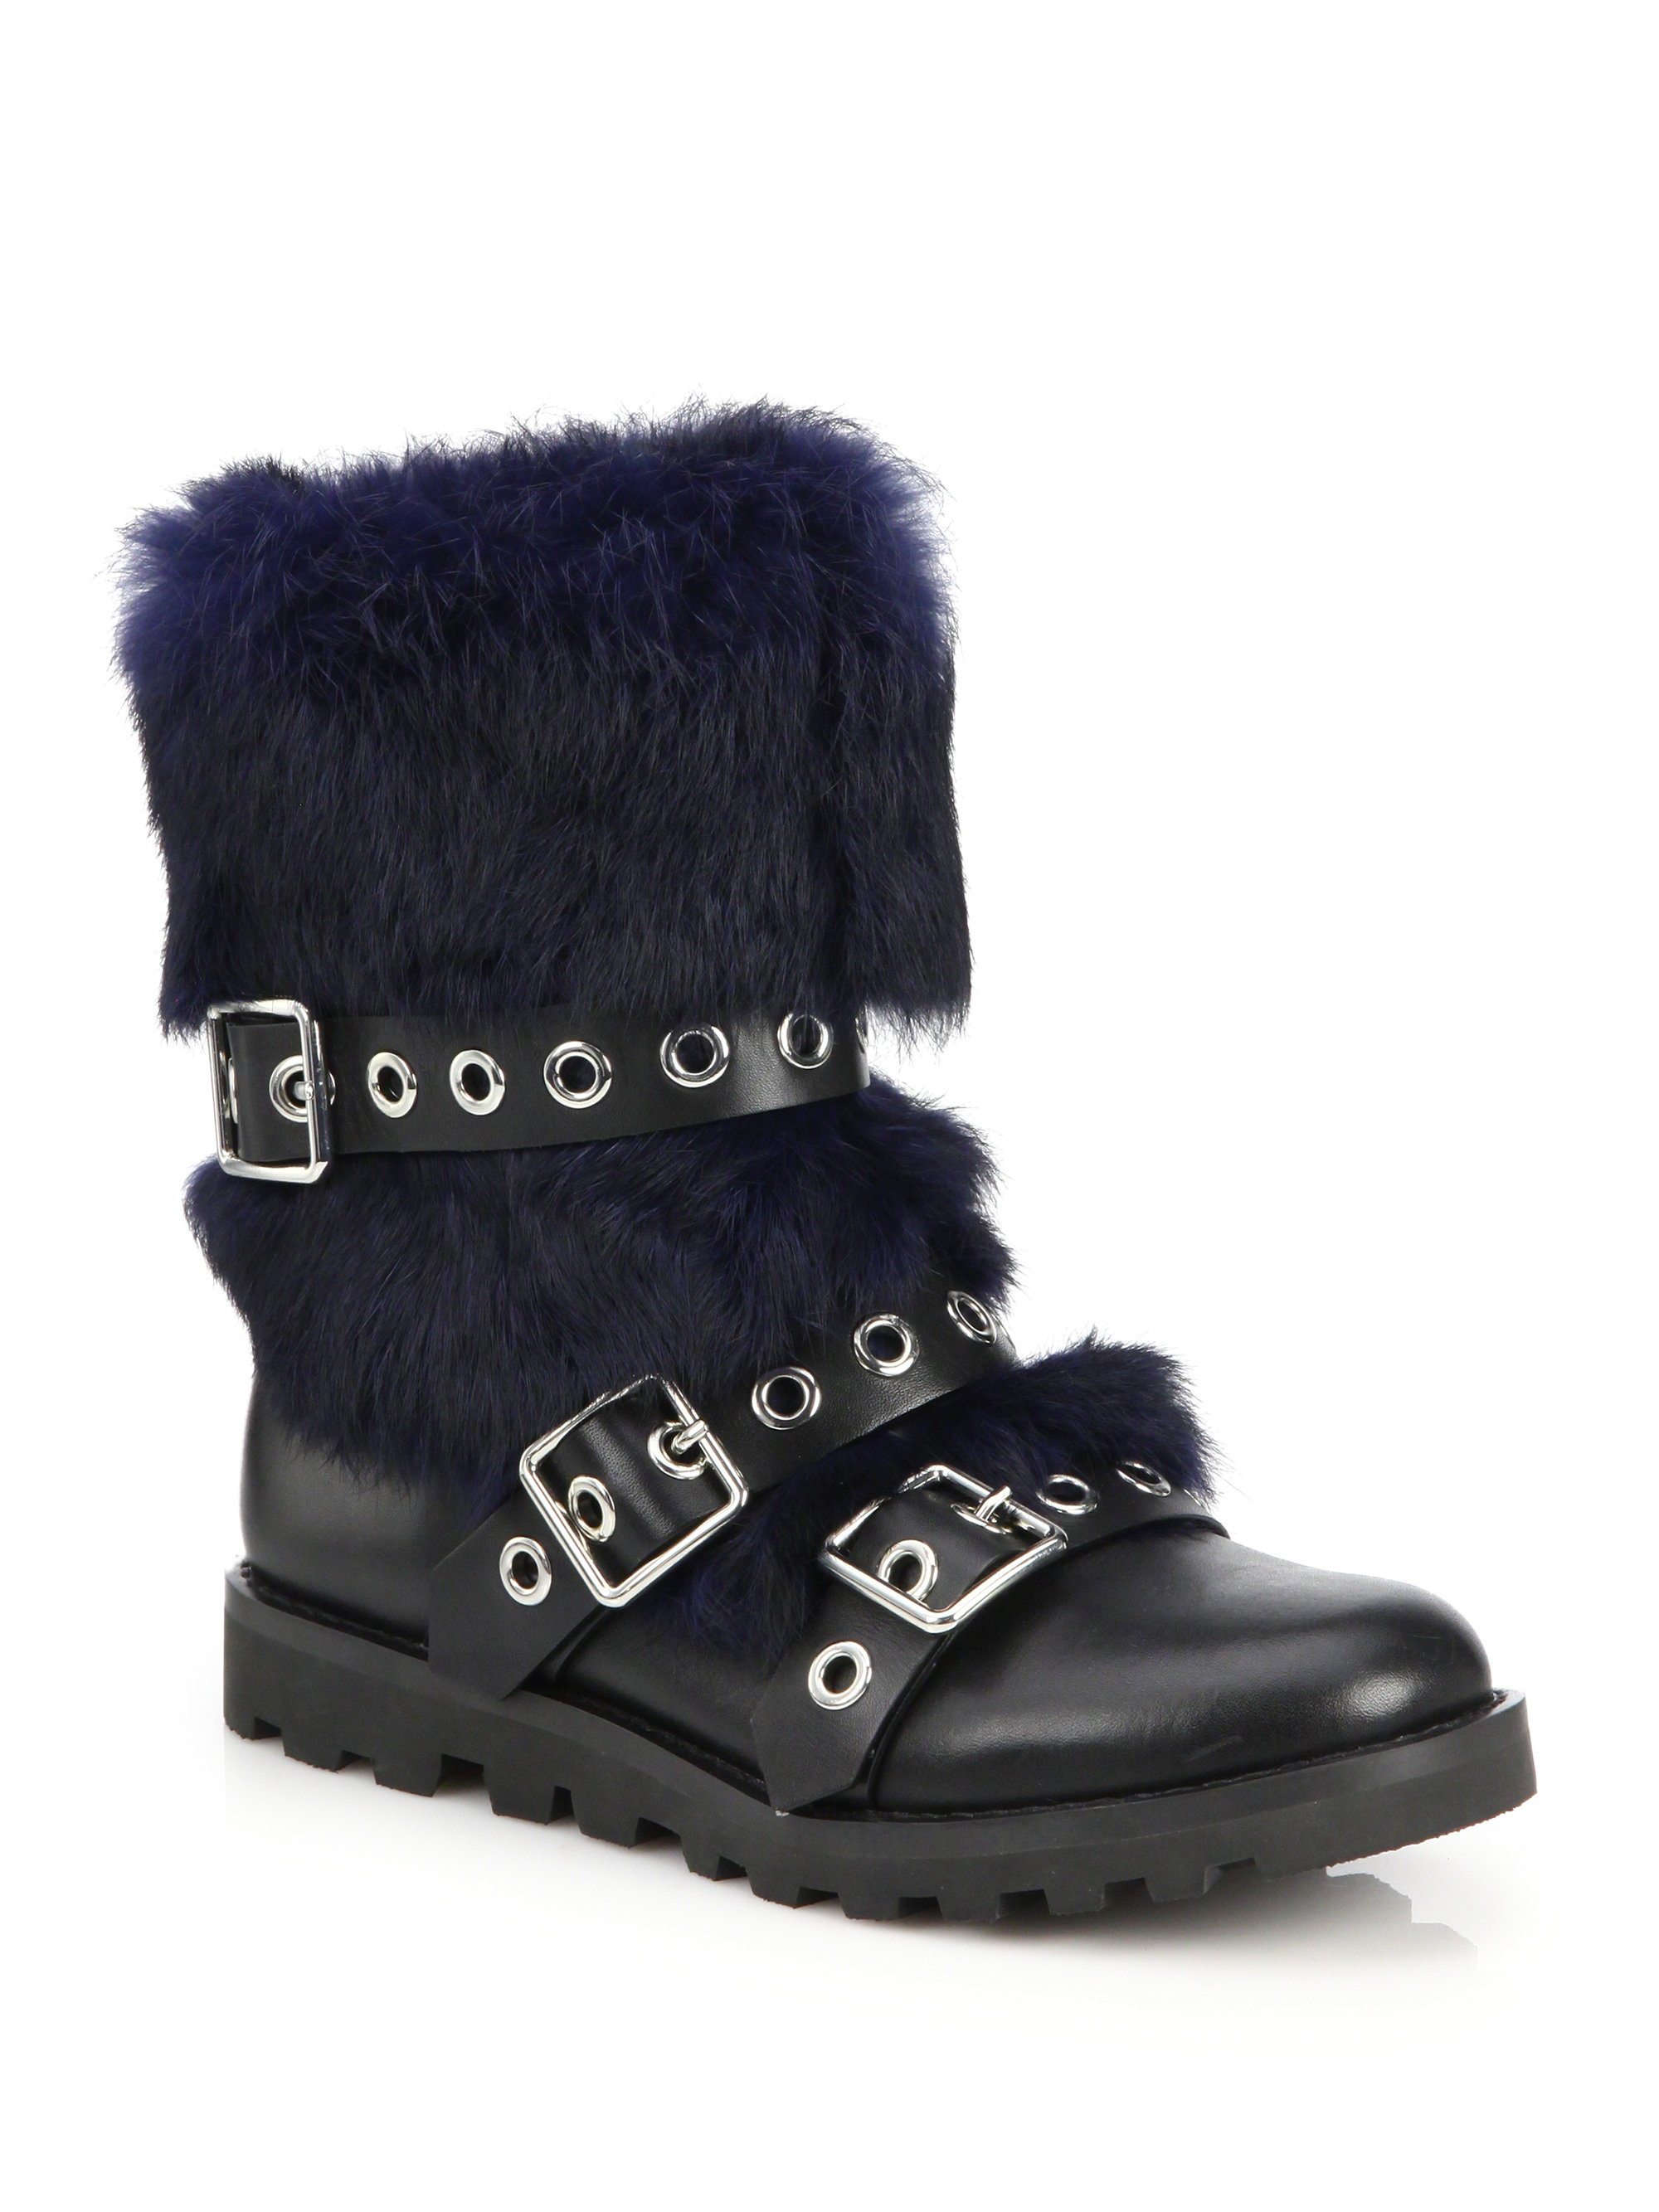 Marc Jacobs Leather Fur-lined Boots UCVA6bcm